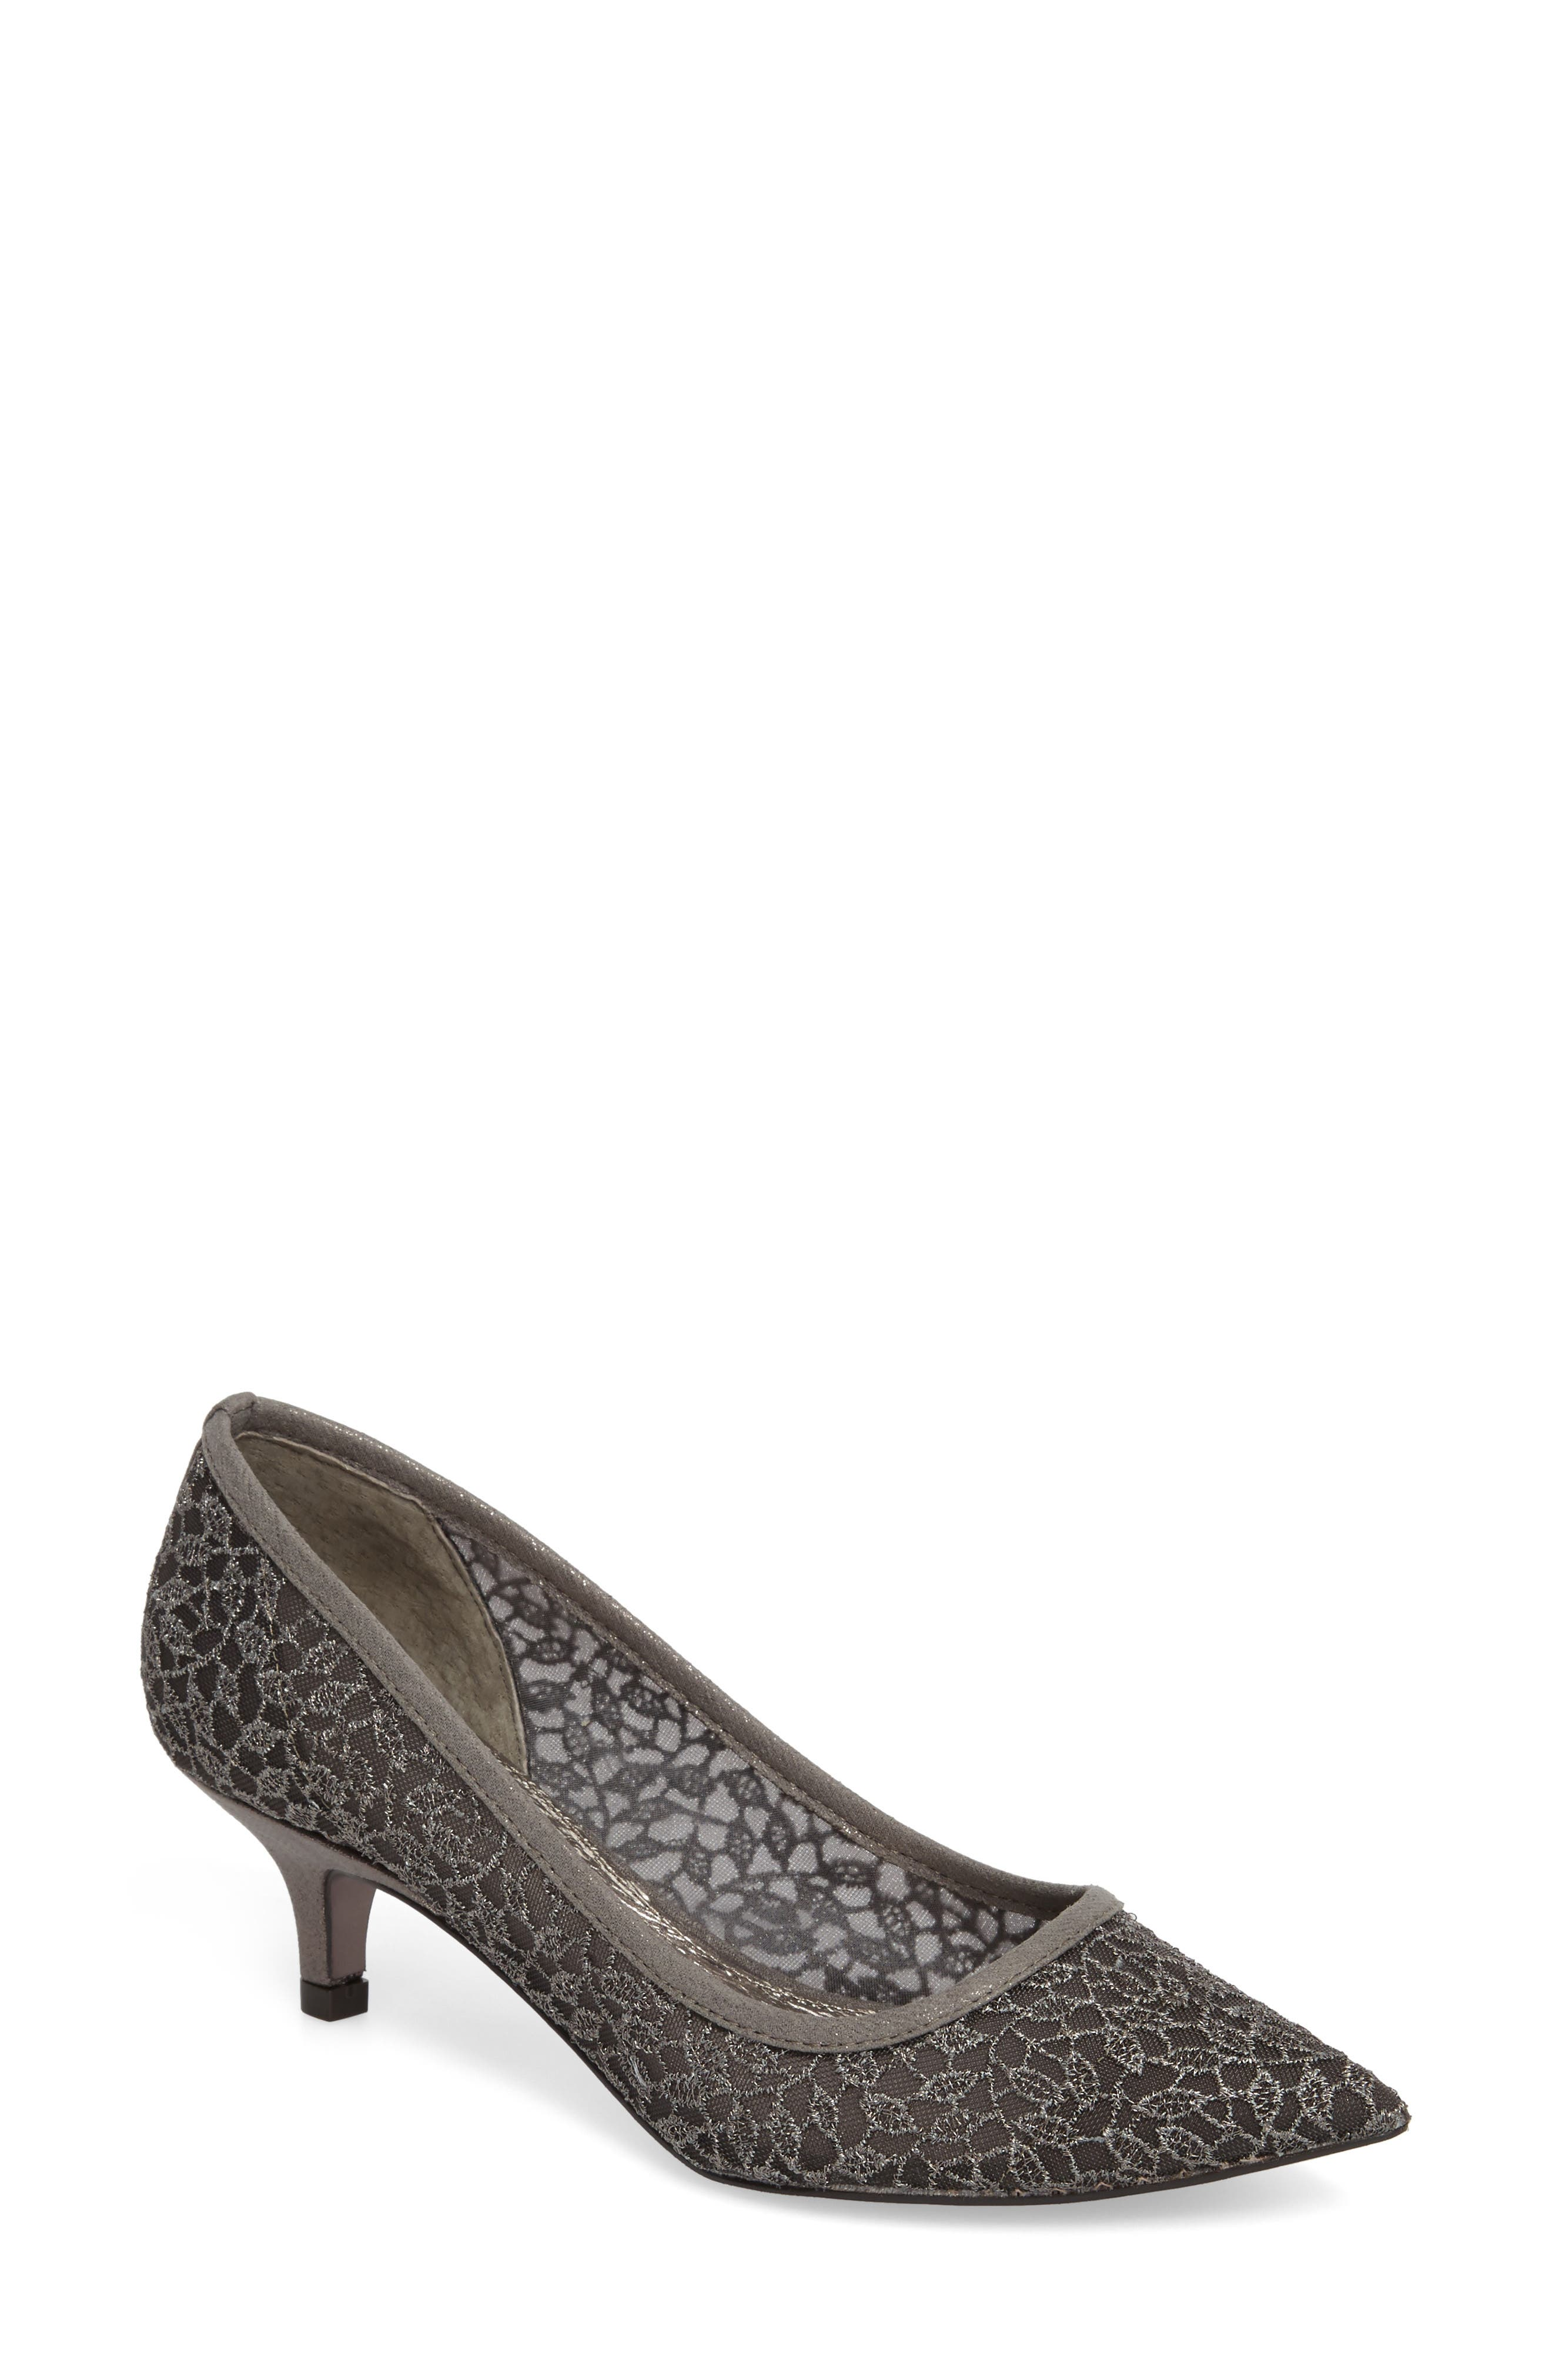 ADRIANNA PAPELL 'Lois' Mesh Pump, Main, color, GUNMETAL LACE FABRIC